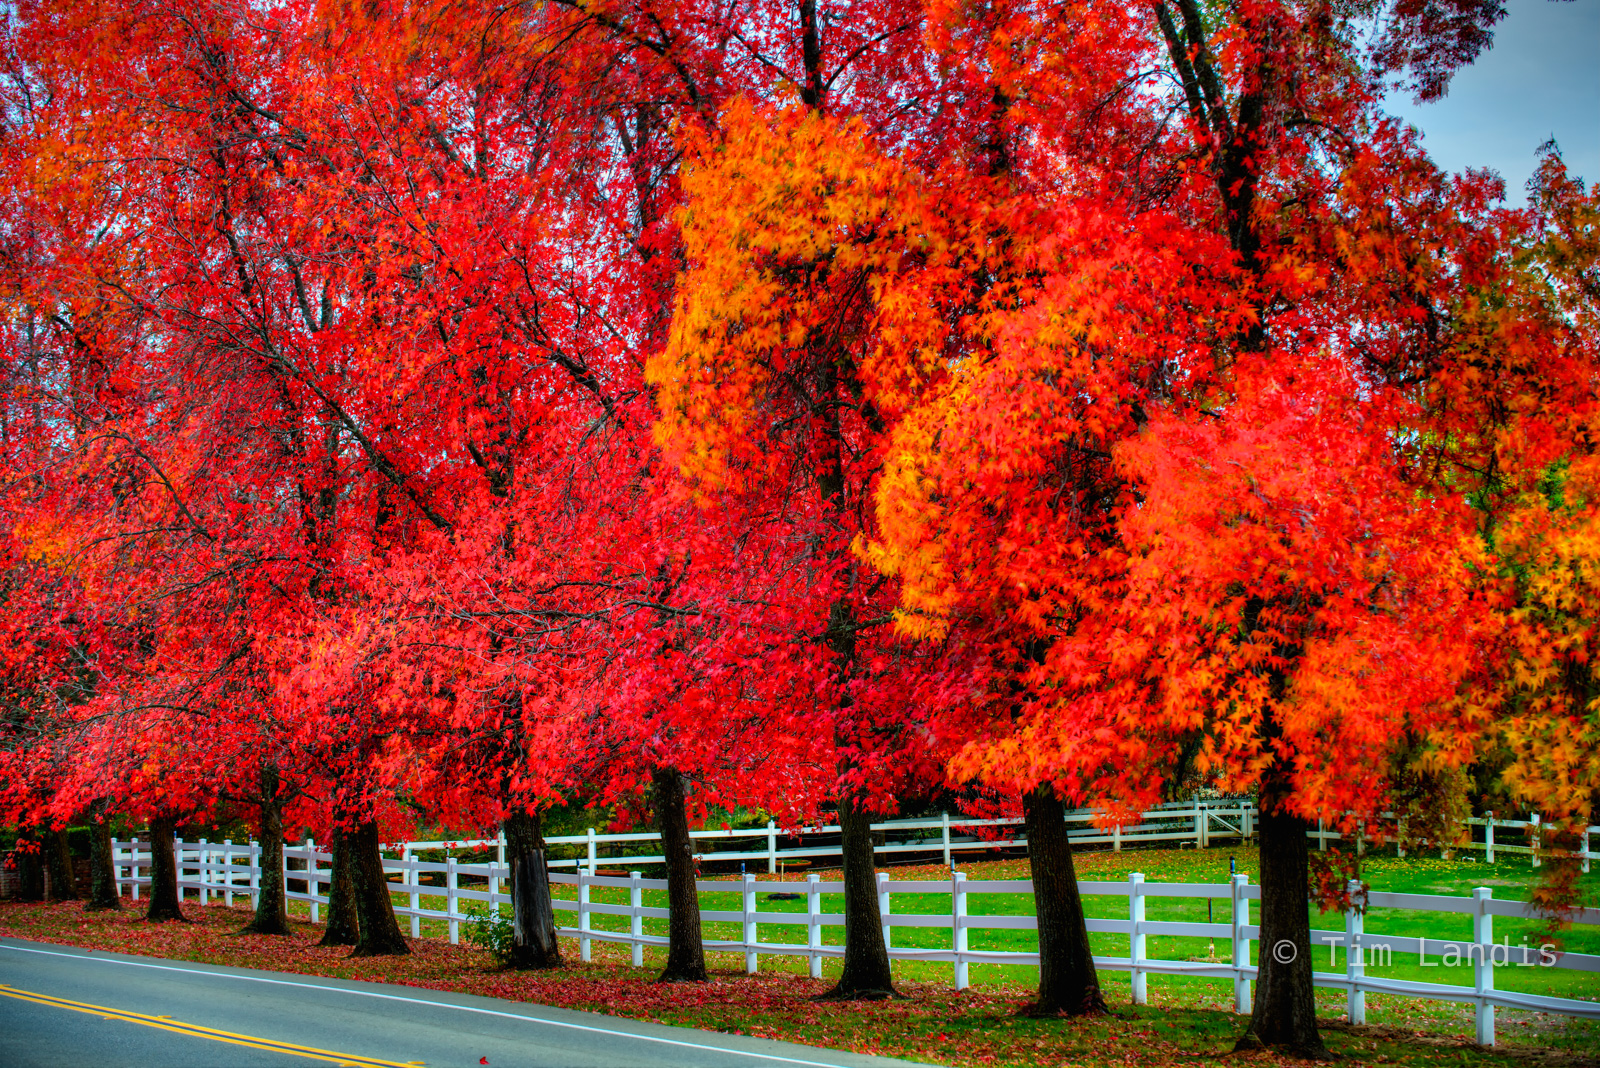 autumn leaves, liquid Amber trees, scarlet reds, photo